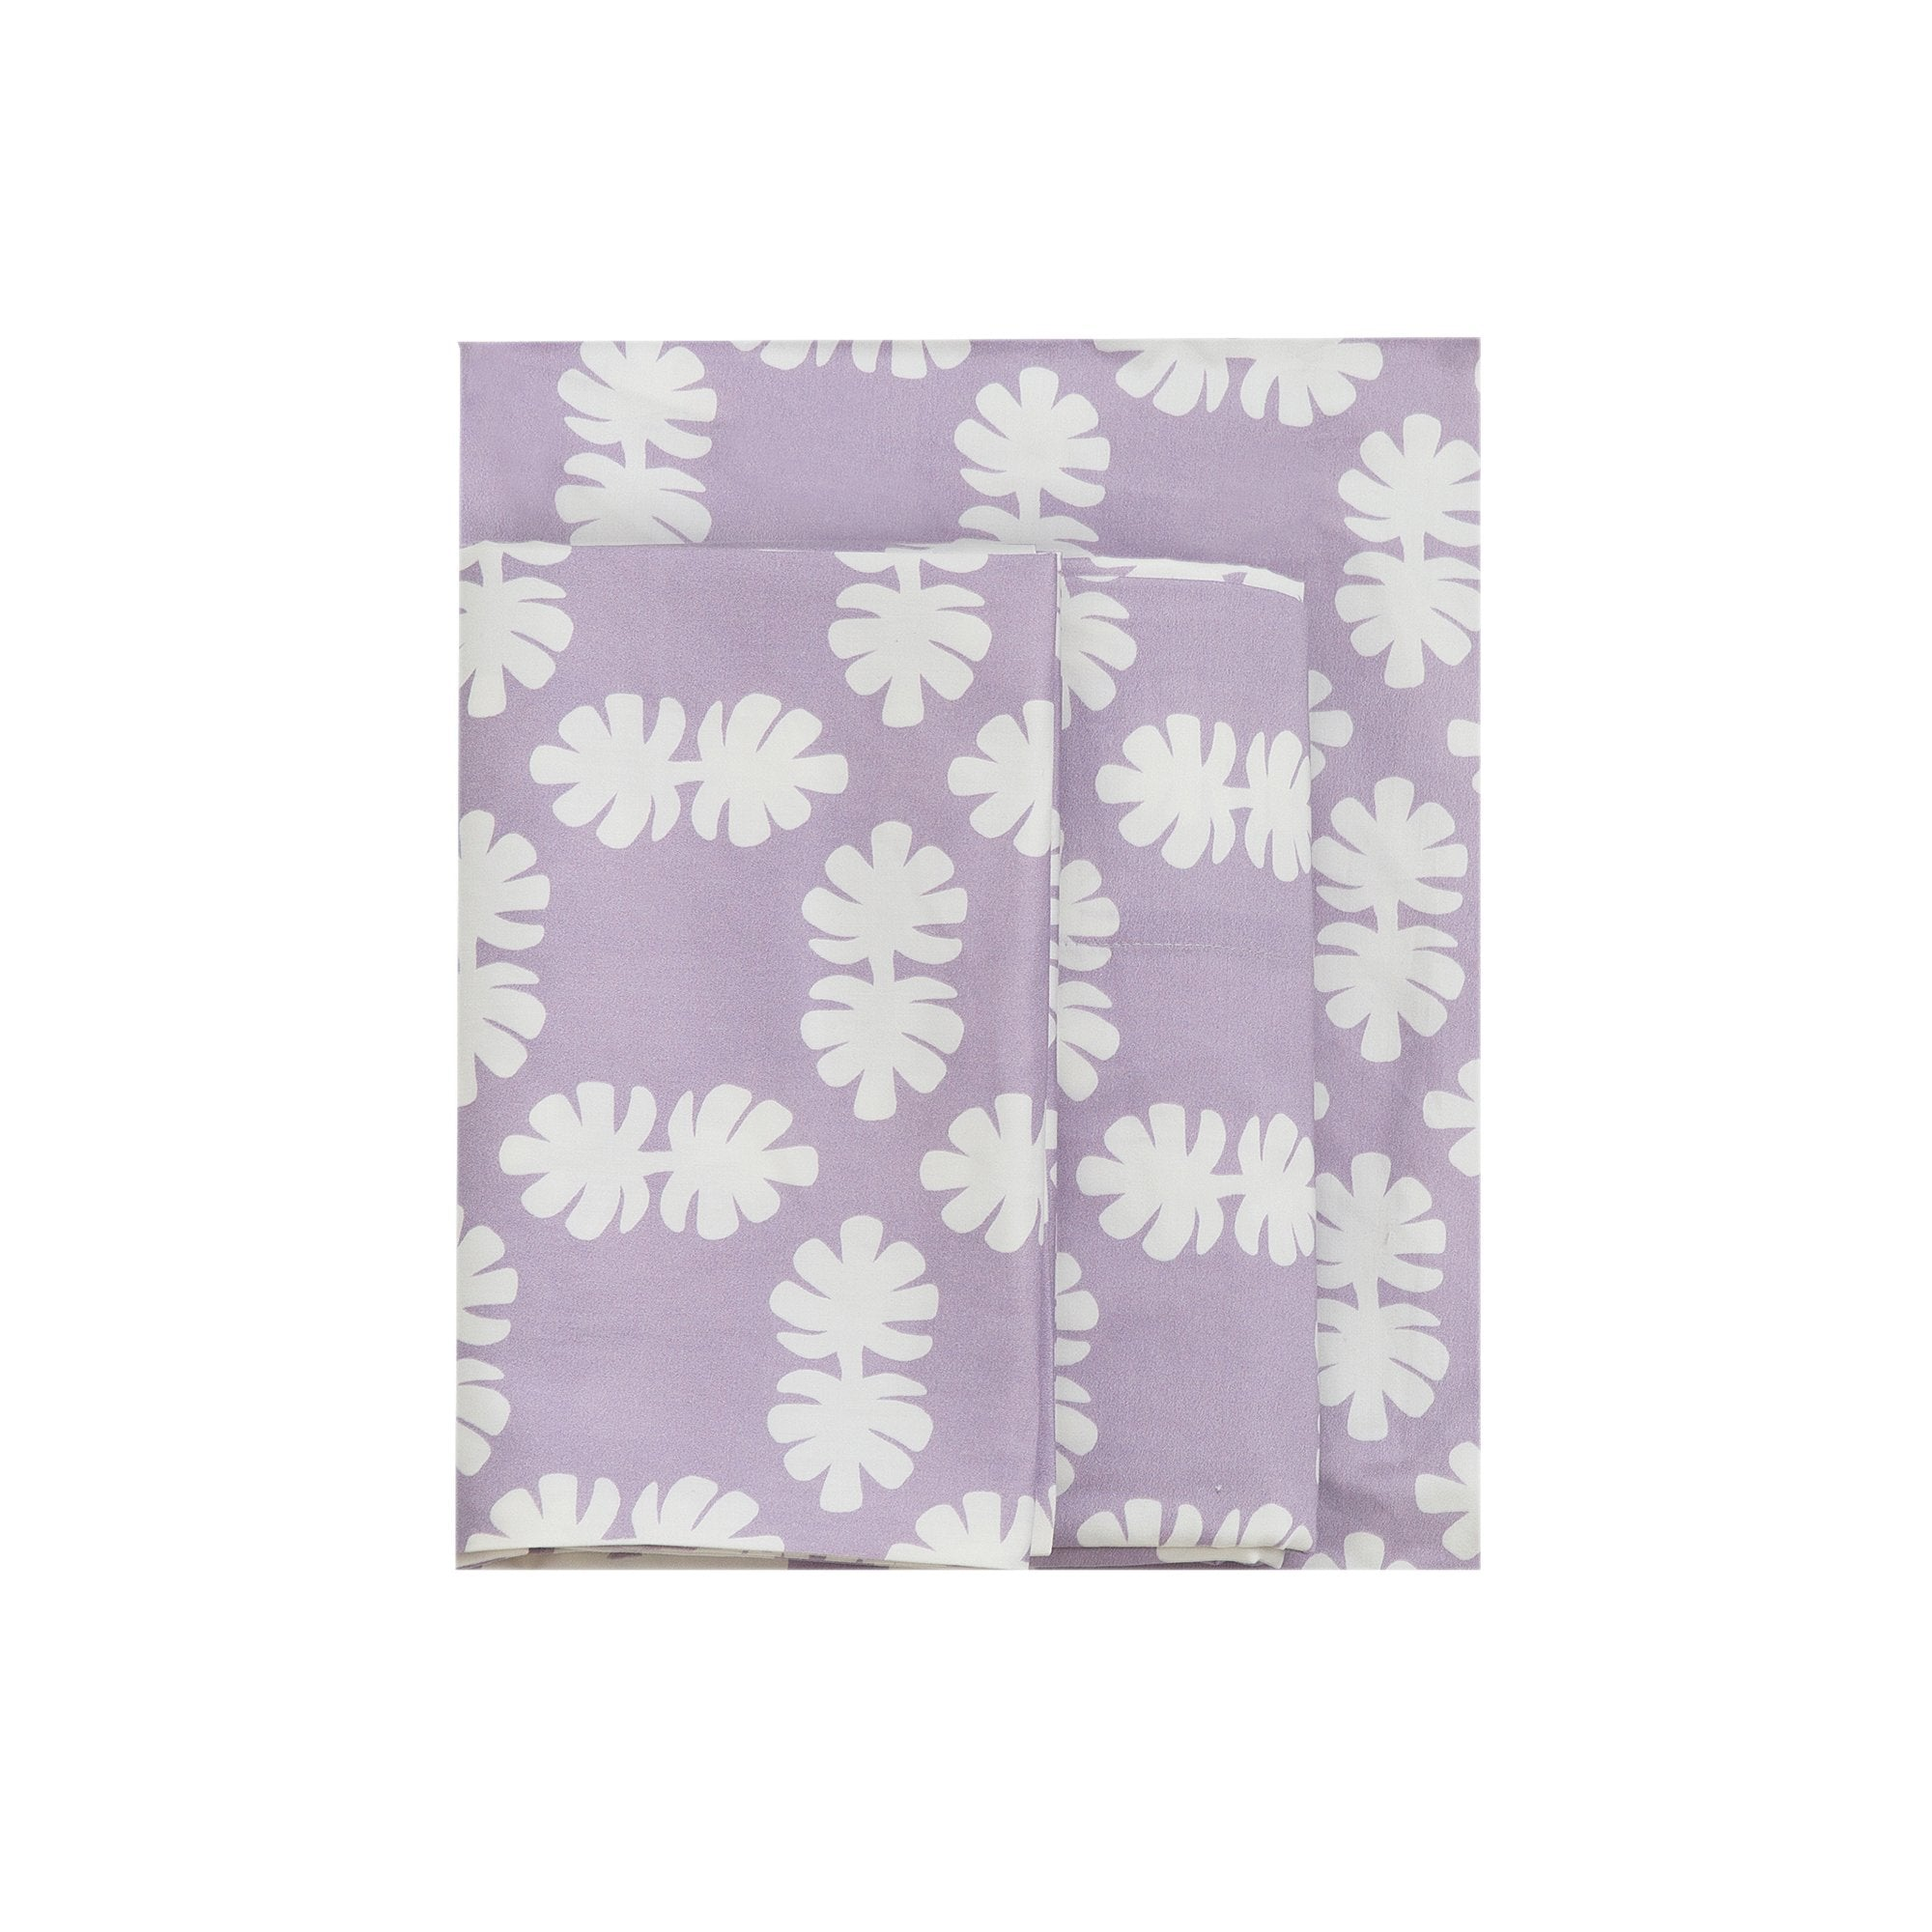 Kikau's Lots of Lilac Coco Palm kids sheet set on white background